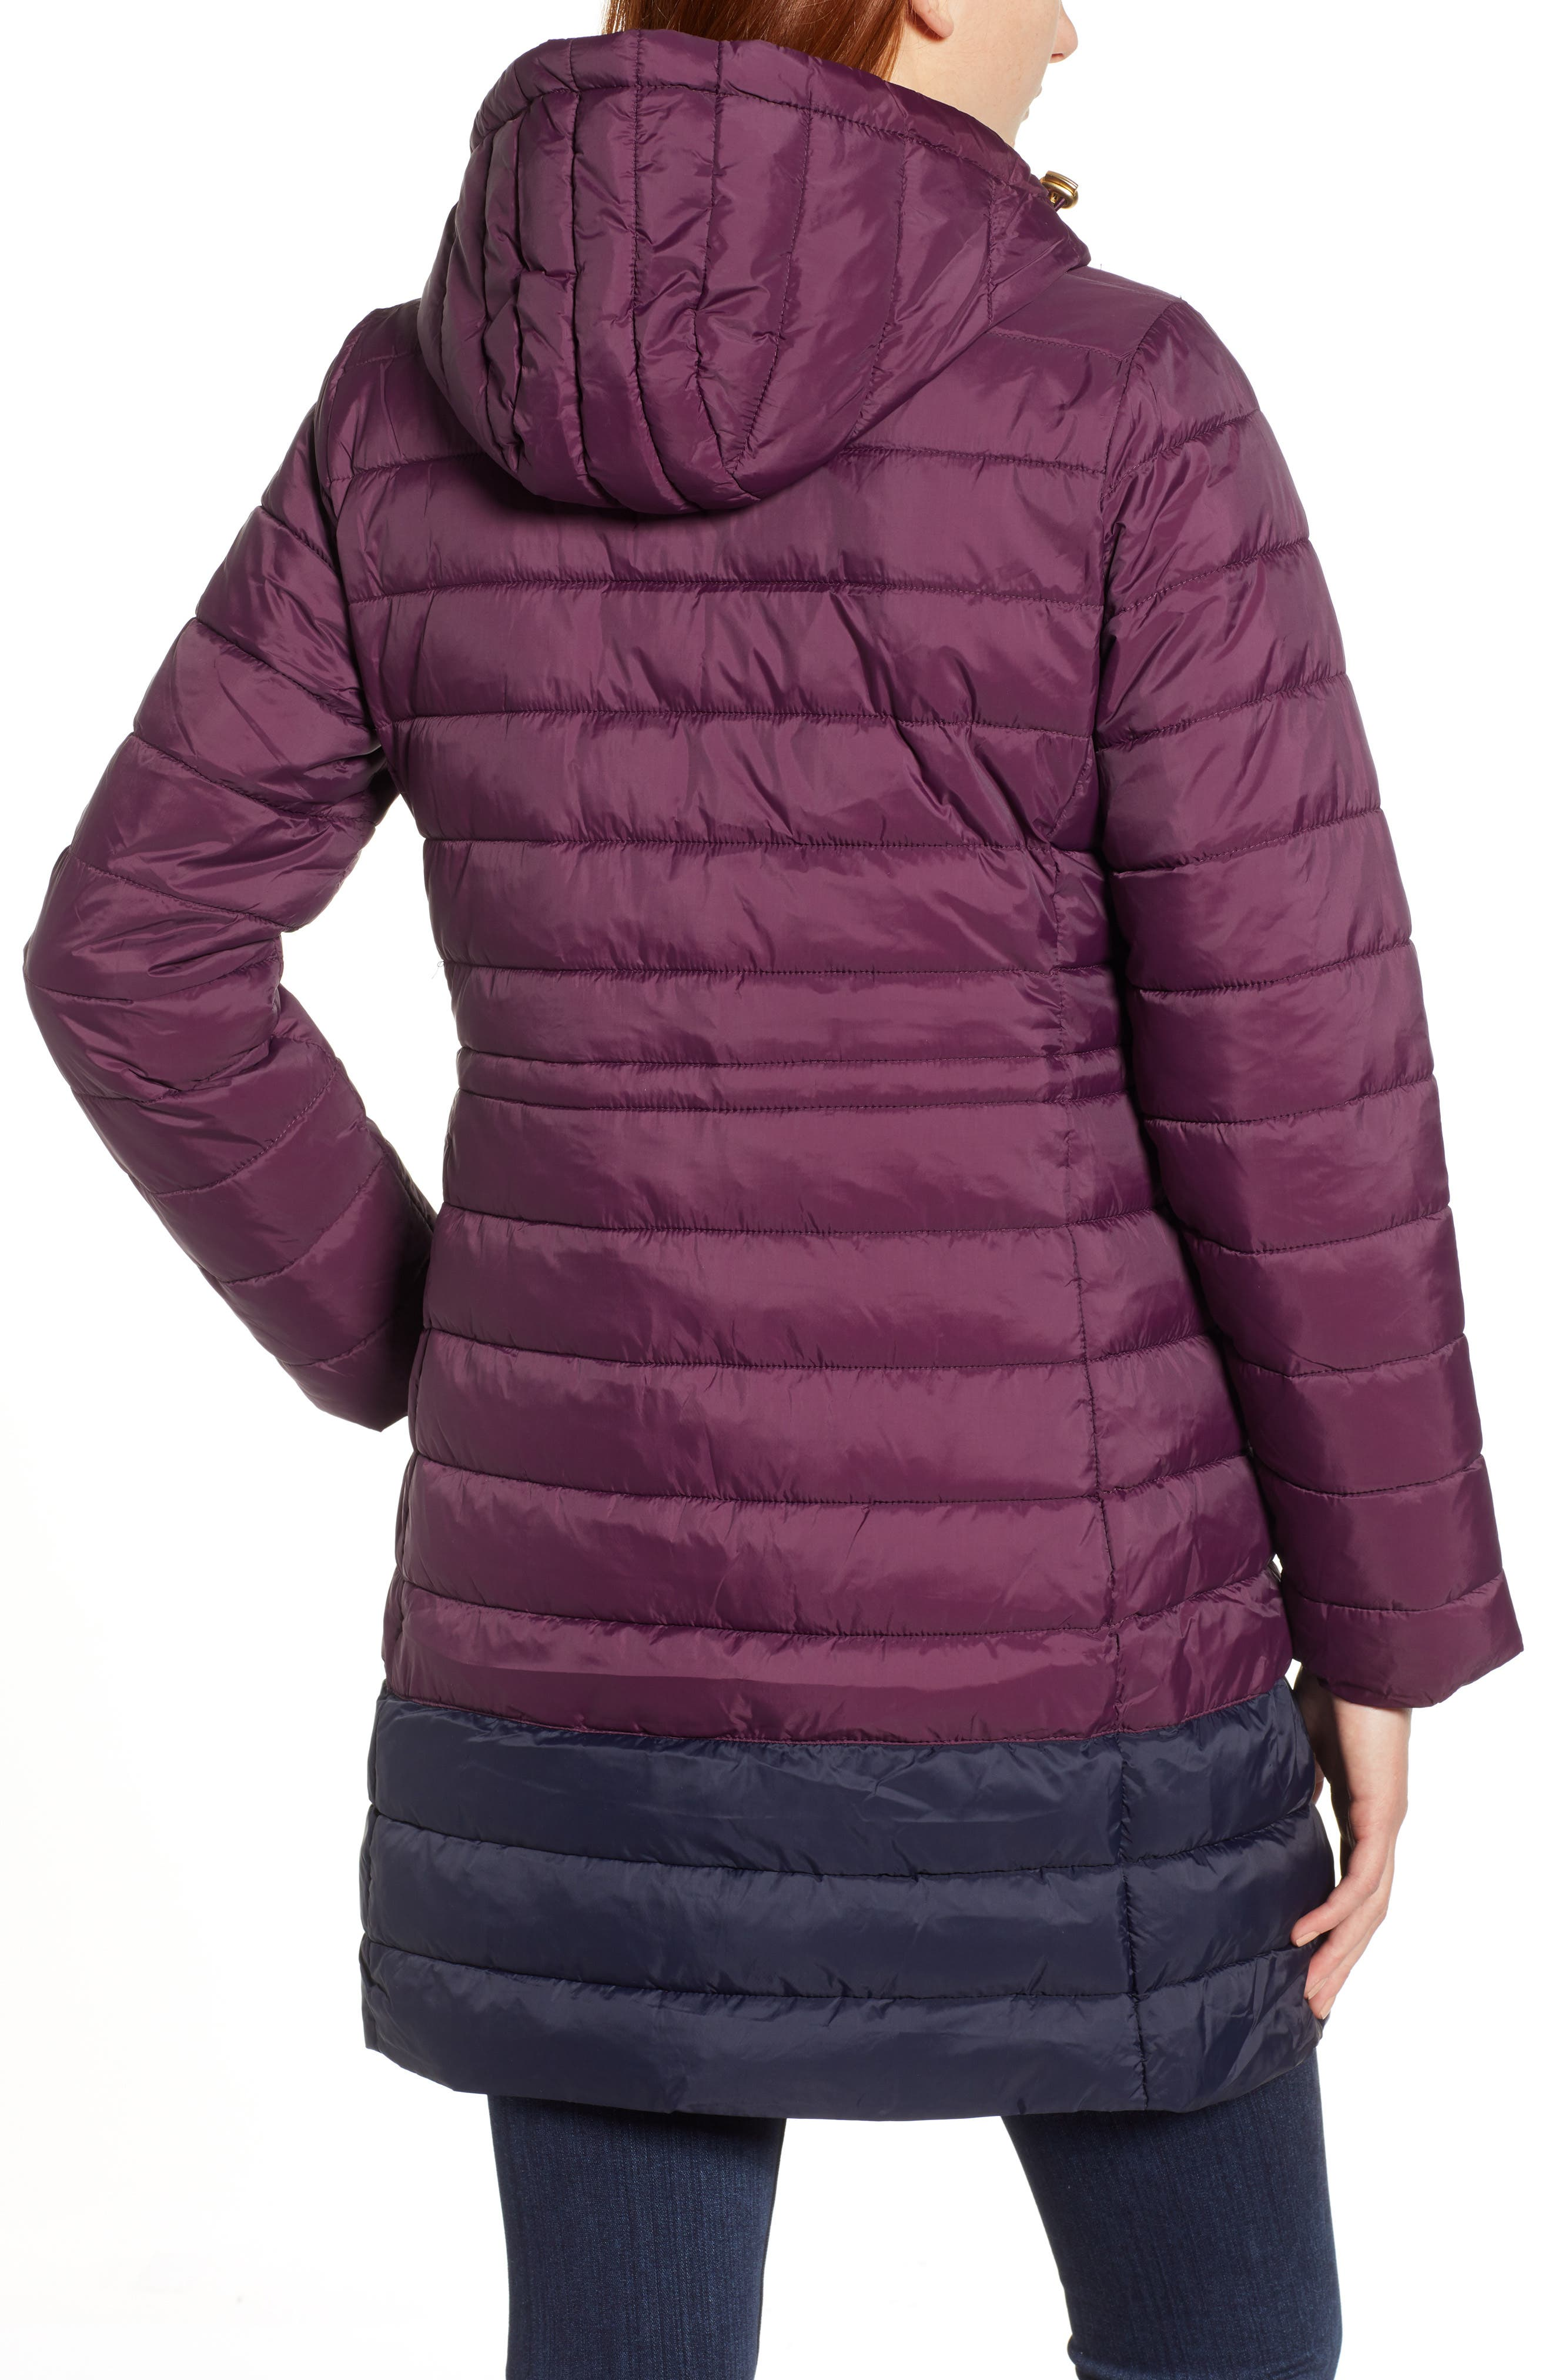 JOULES,                             Heathcote Two-Tone Puffer Jacket,                             Alternate thumbnail 2, color,                             BURGUNDY